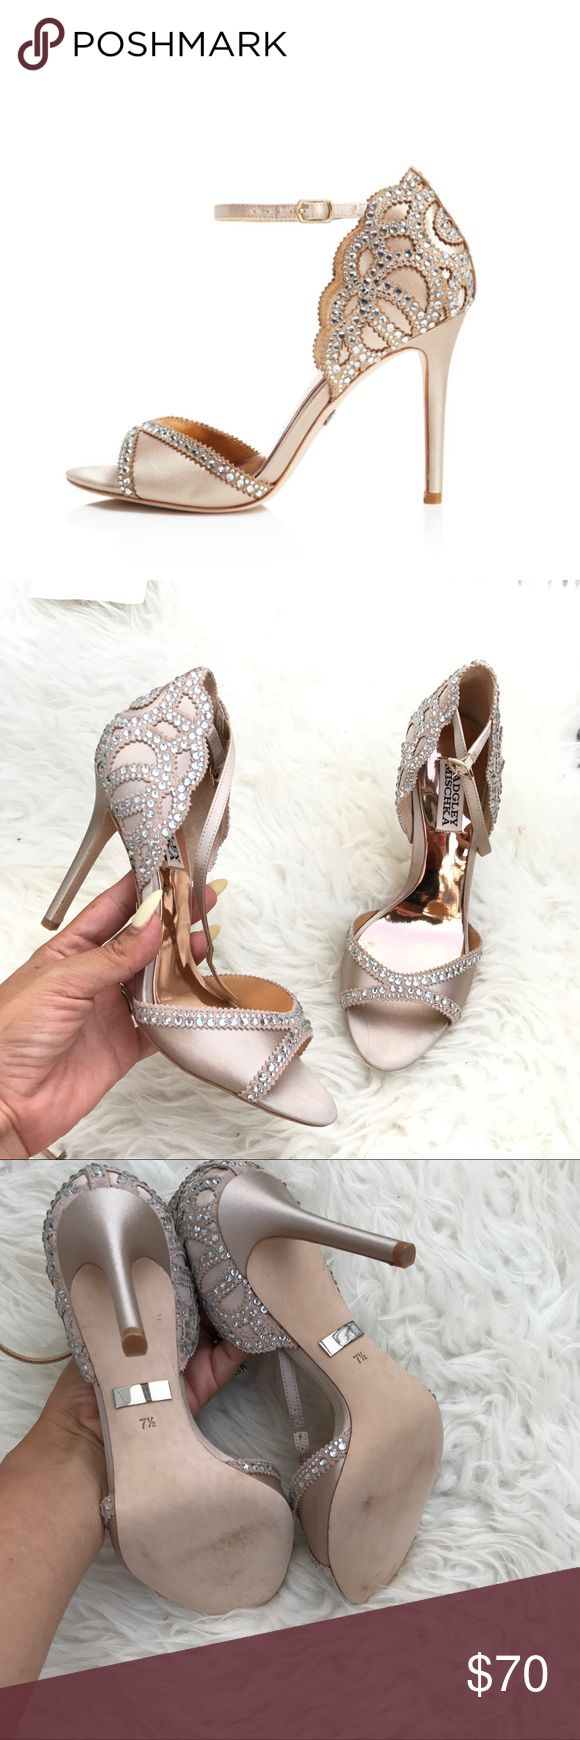 """BADGLEY MISCHKA AUTHENTIC Satin PUMPS SZ 7.5 new BADGLEY MISCHKA AUTHENTIC Satin PUMPS SZ 7.5 new 100% authentic! NO BOX ! STORE DISPLAY NEW NEW NEW !!! Itemcloset#doze.  You won't lack razzle-dazzle in this show-stealing sandal fashioned with a radiating array of light-catching crystals and a subtly scalloped topline. 3 3/4"""" heel  2 3/4"""" strap height Adjustable buckle strap closure Satin and leather upper/synthetic and satin lining/leather sole Badgley Mischka Shoes"""